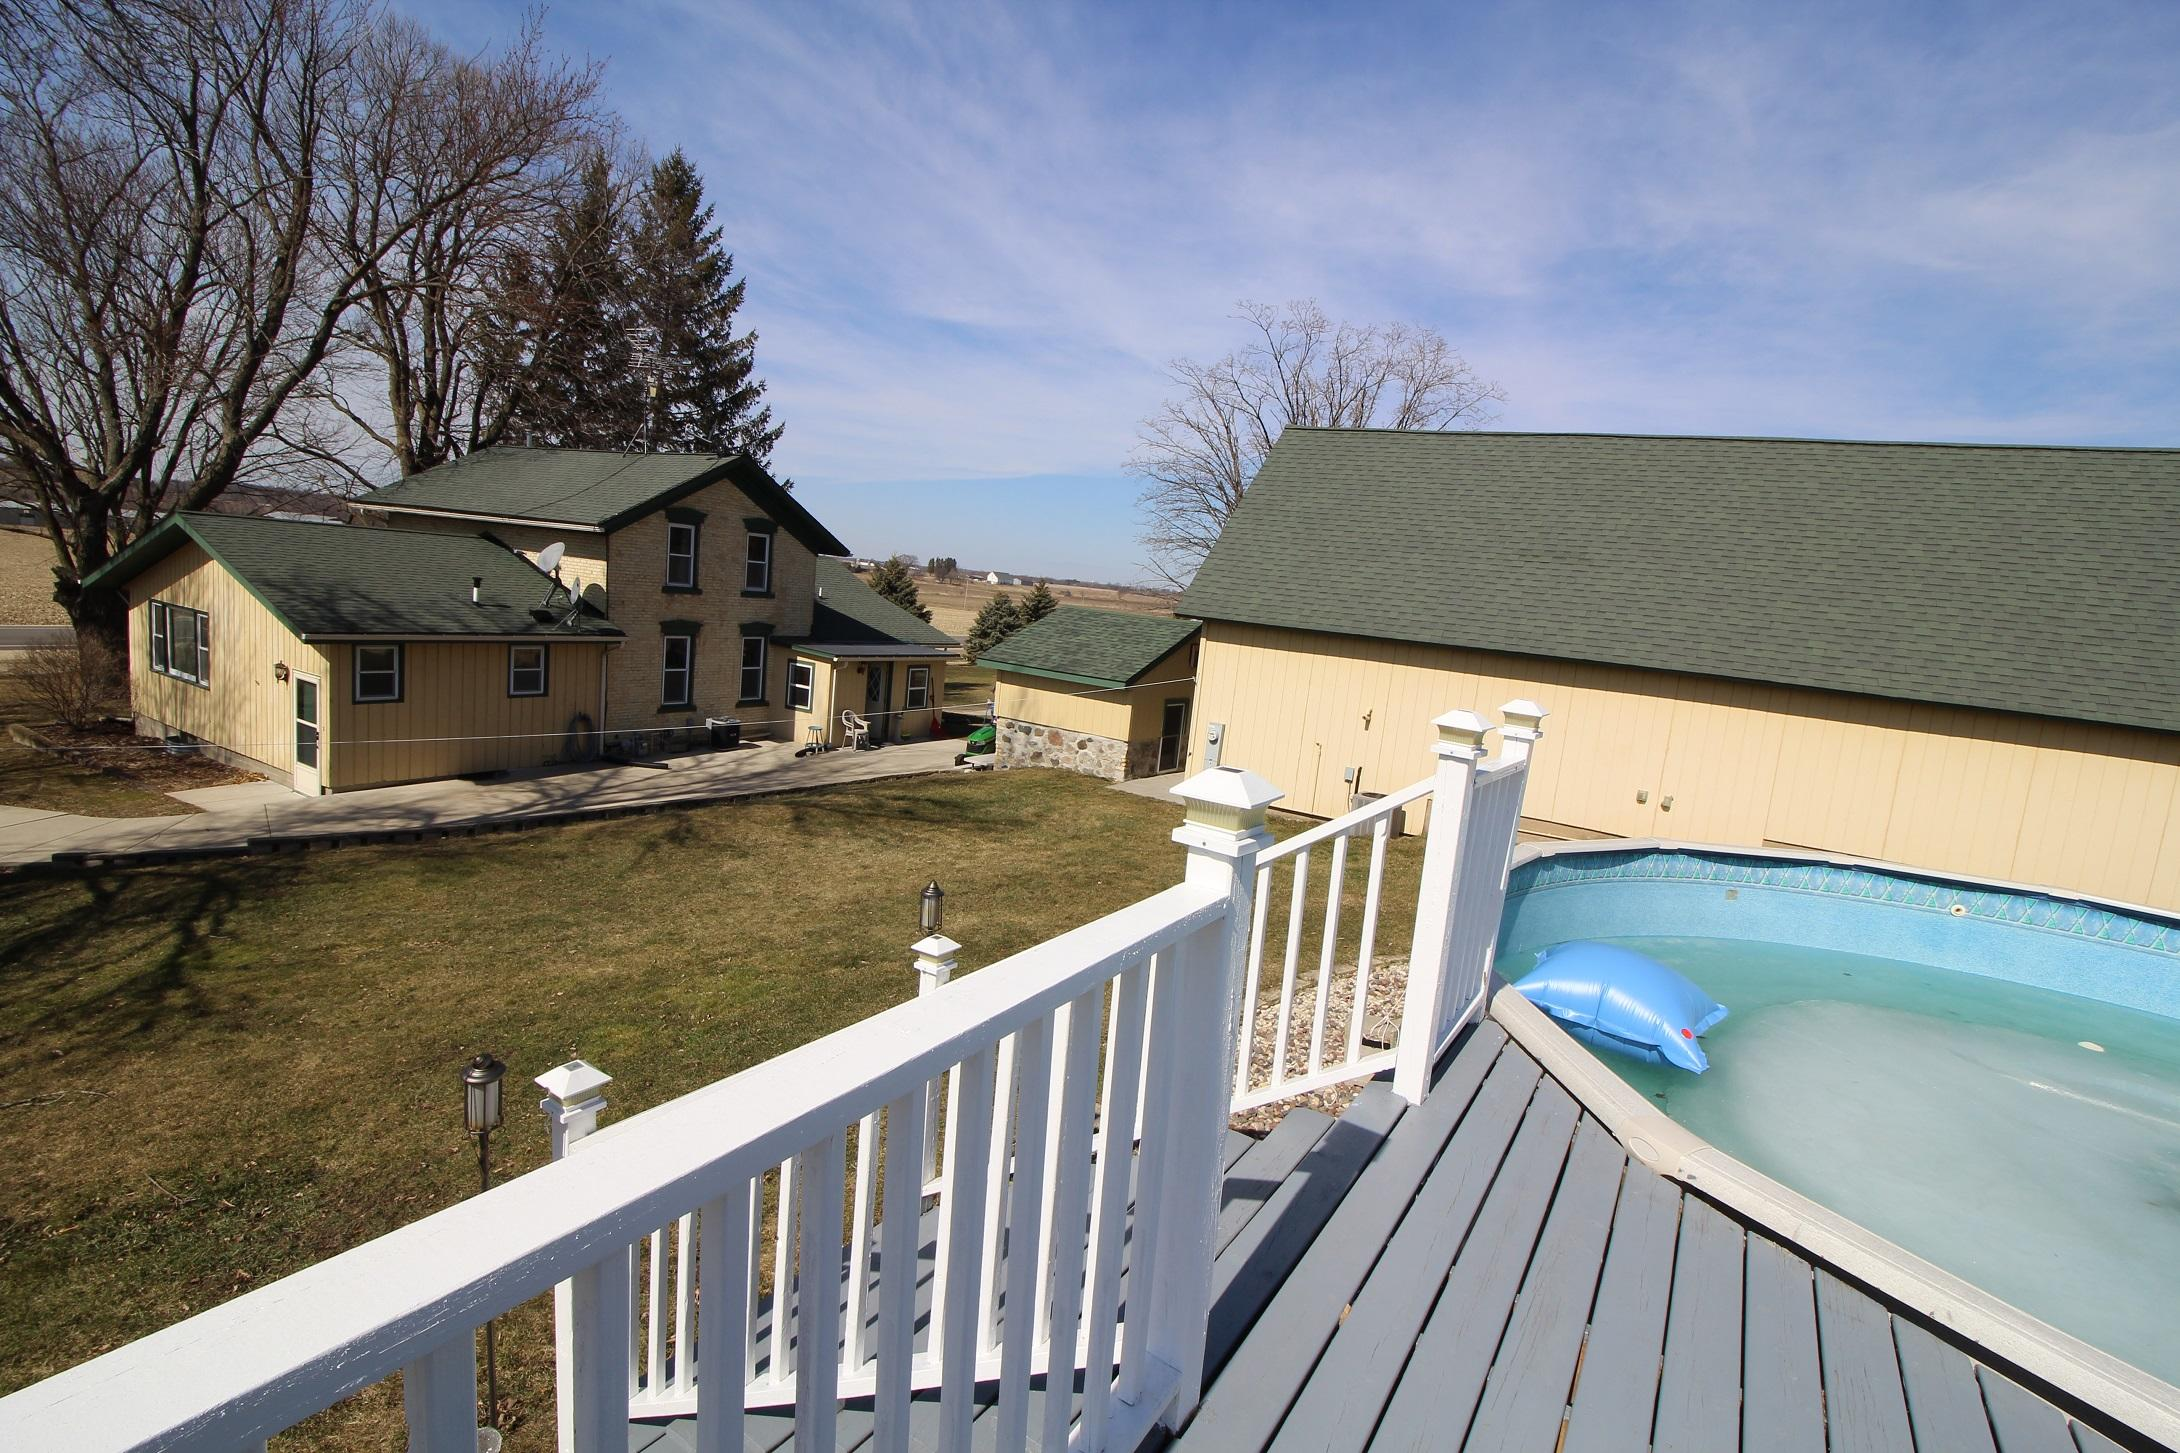 View of Pool to House